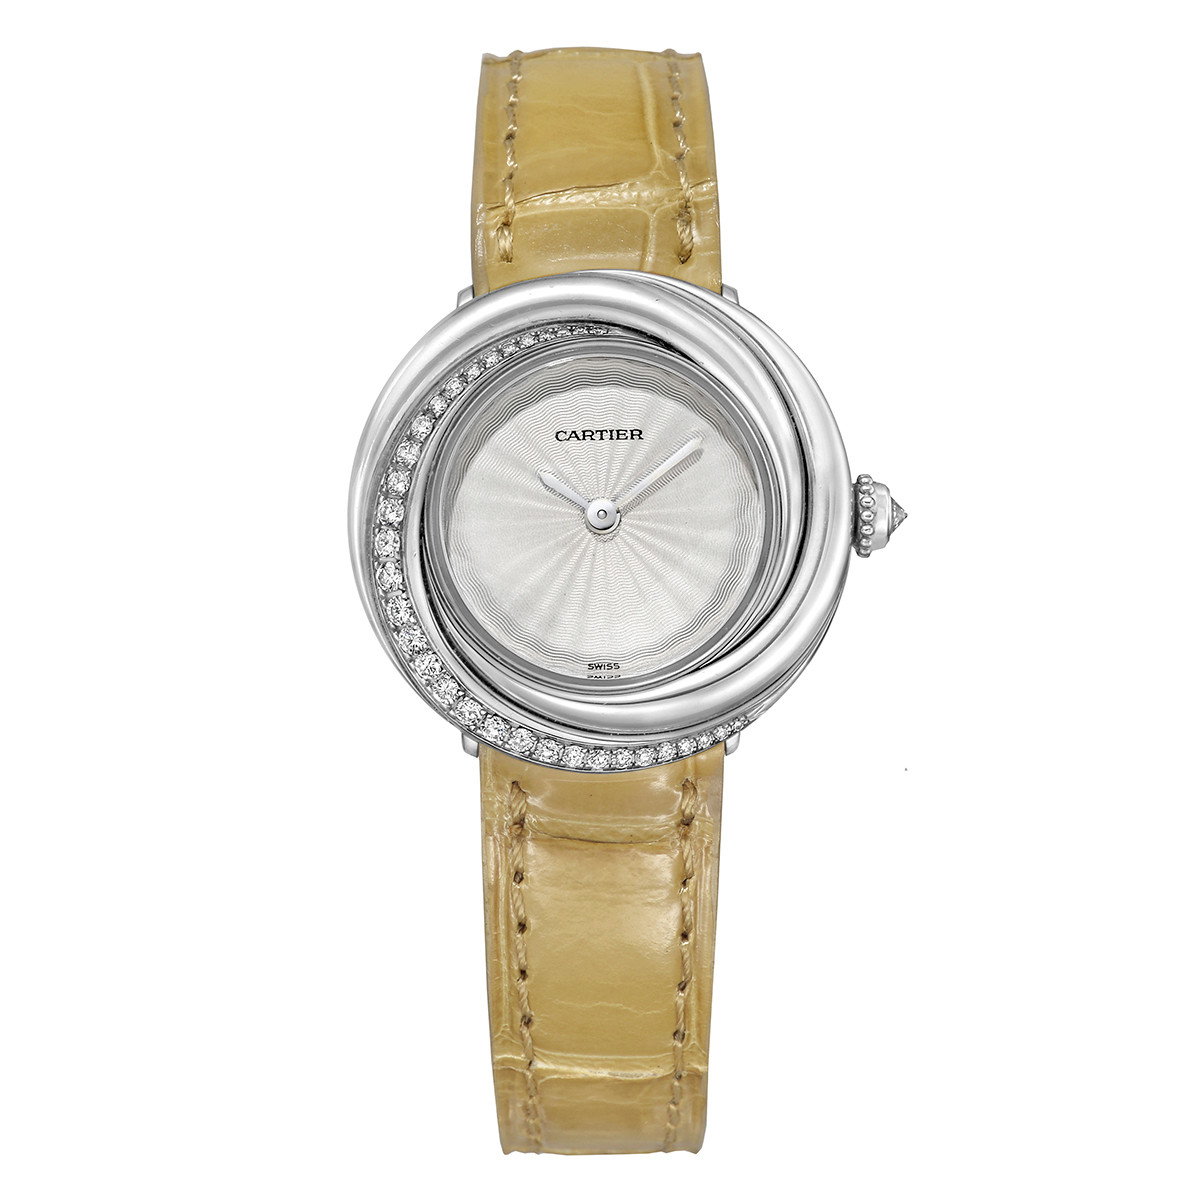 Trinity White Gold & Diamond Wristwatch